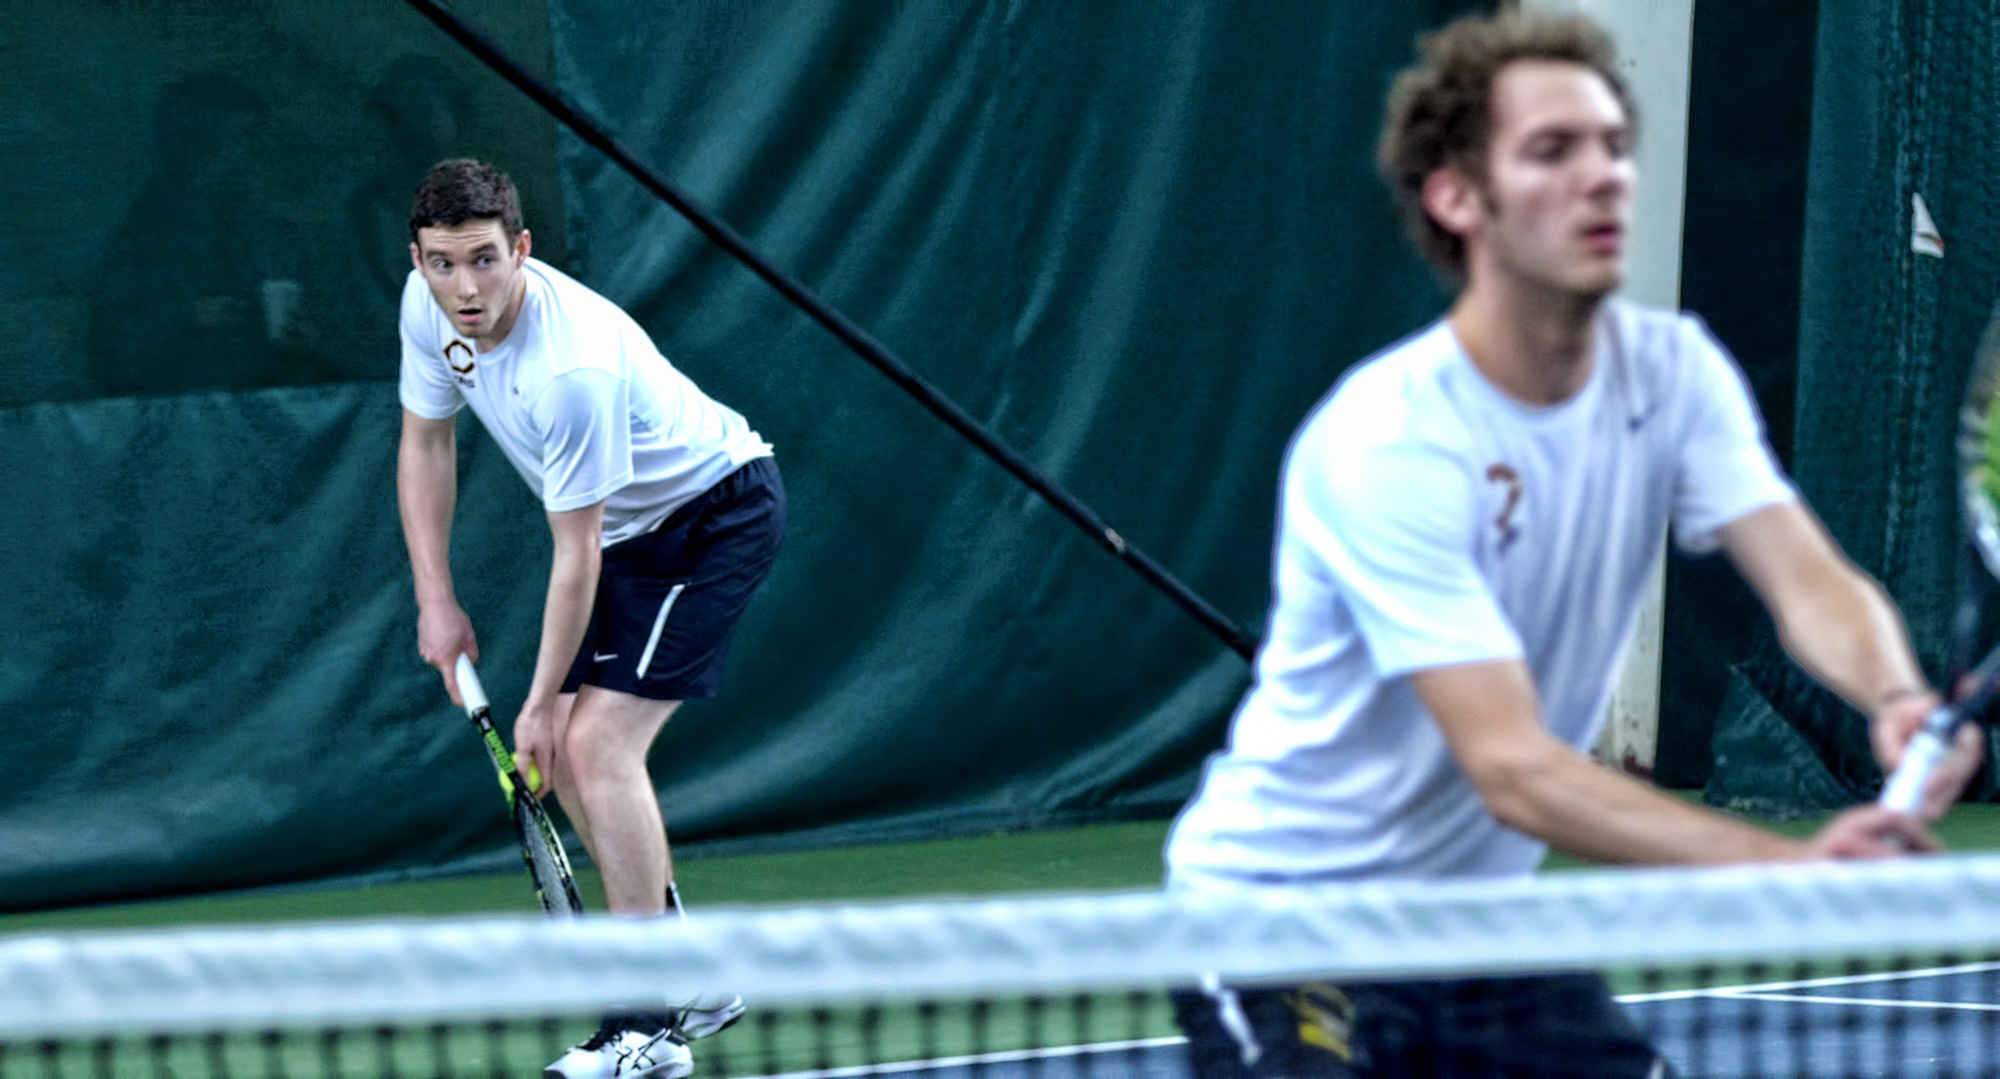 The doubles team of Erik Porter (L) and David Schneck claimed one of the two doubles wins for the Cobbers in the MIAC opener at St. John's.